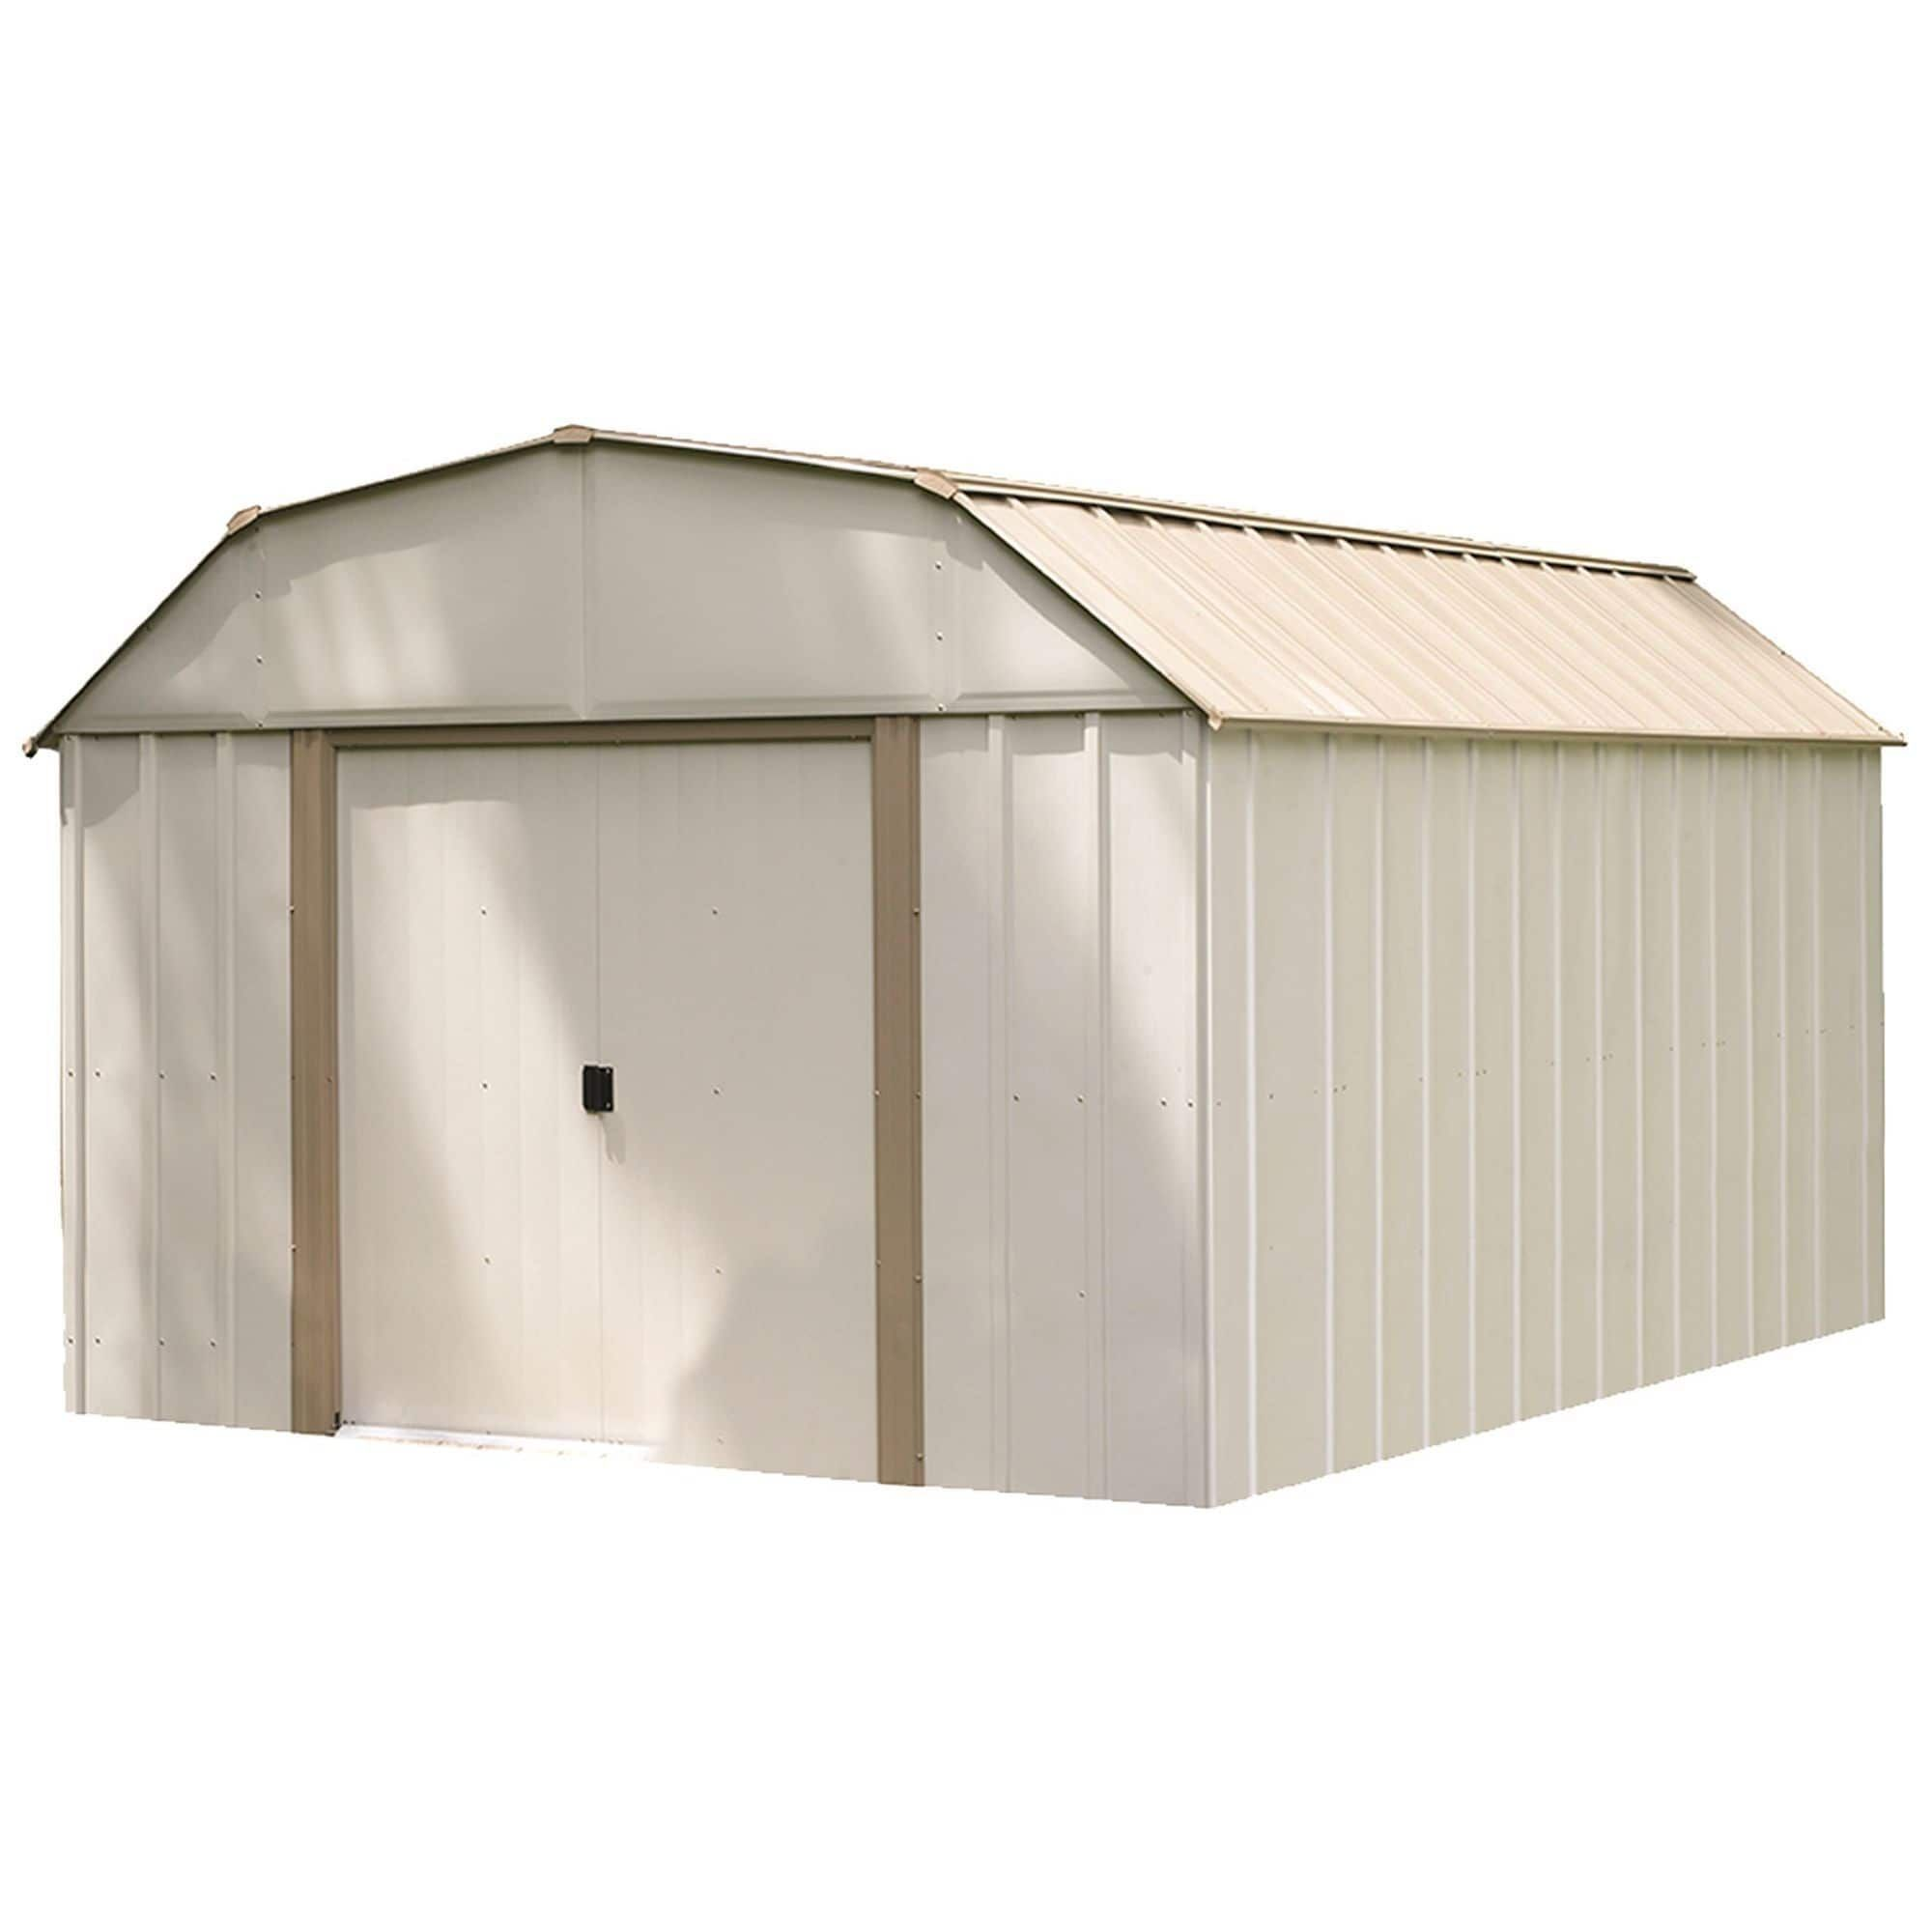 Arrow Lexington Lx1014 Galvanized Steel Storage Shed 10 X 14 Steel Storage Sheds Shed Storage Storage Shed Kits